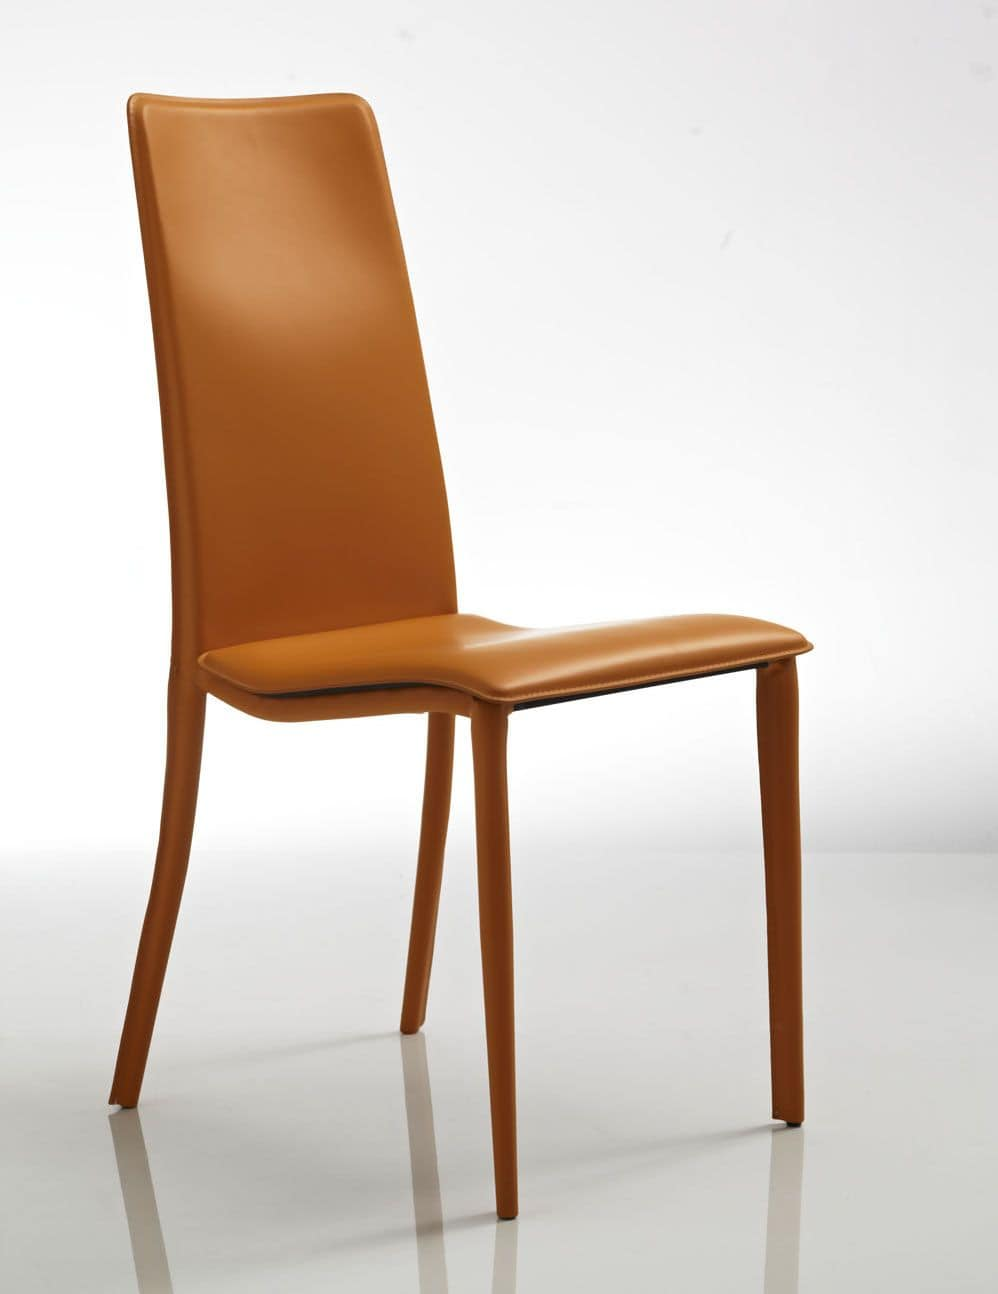 Cora, Comfortable chair, in orange leather, for restaurant and hotel